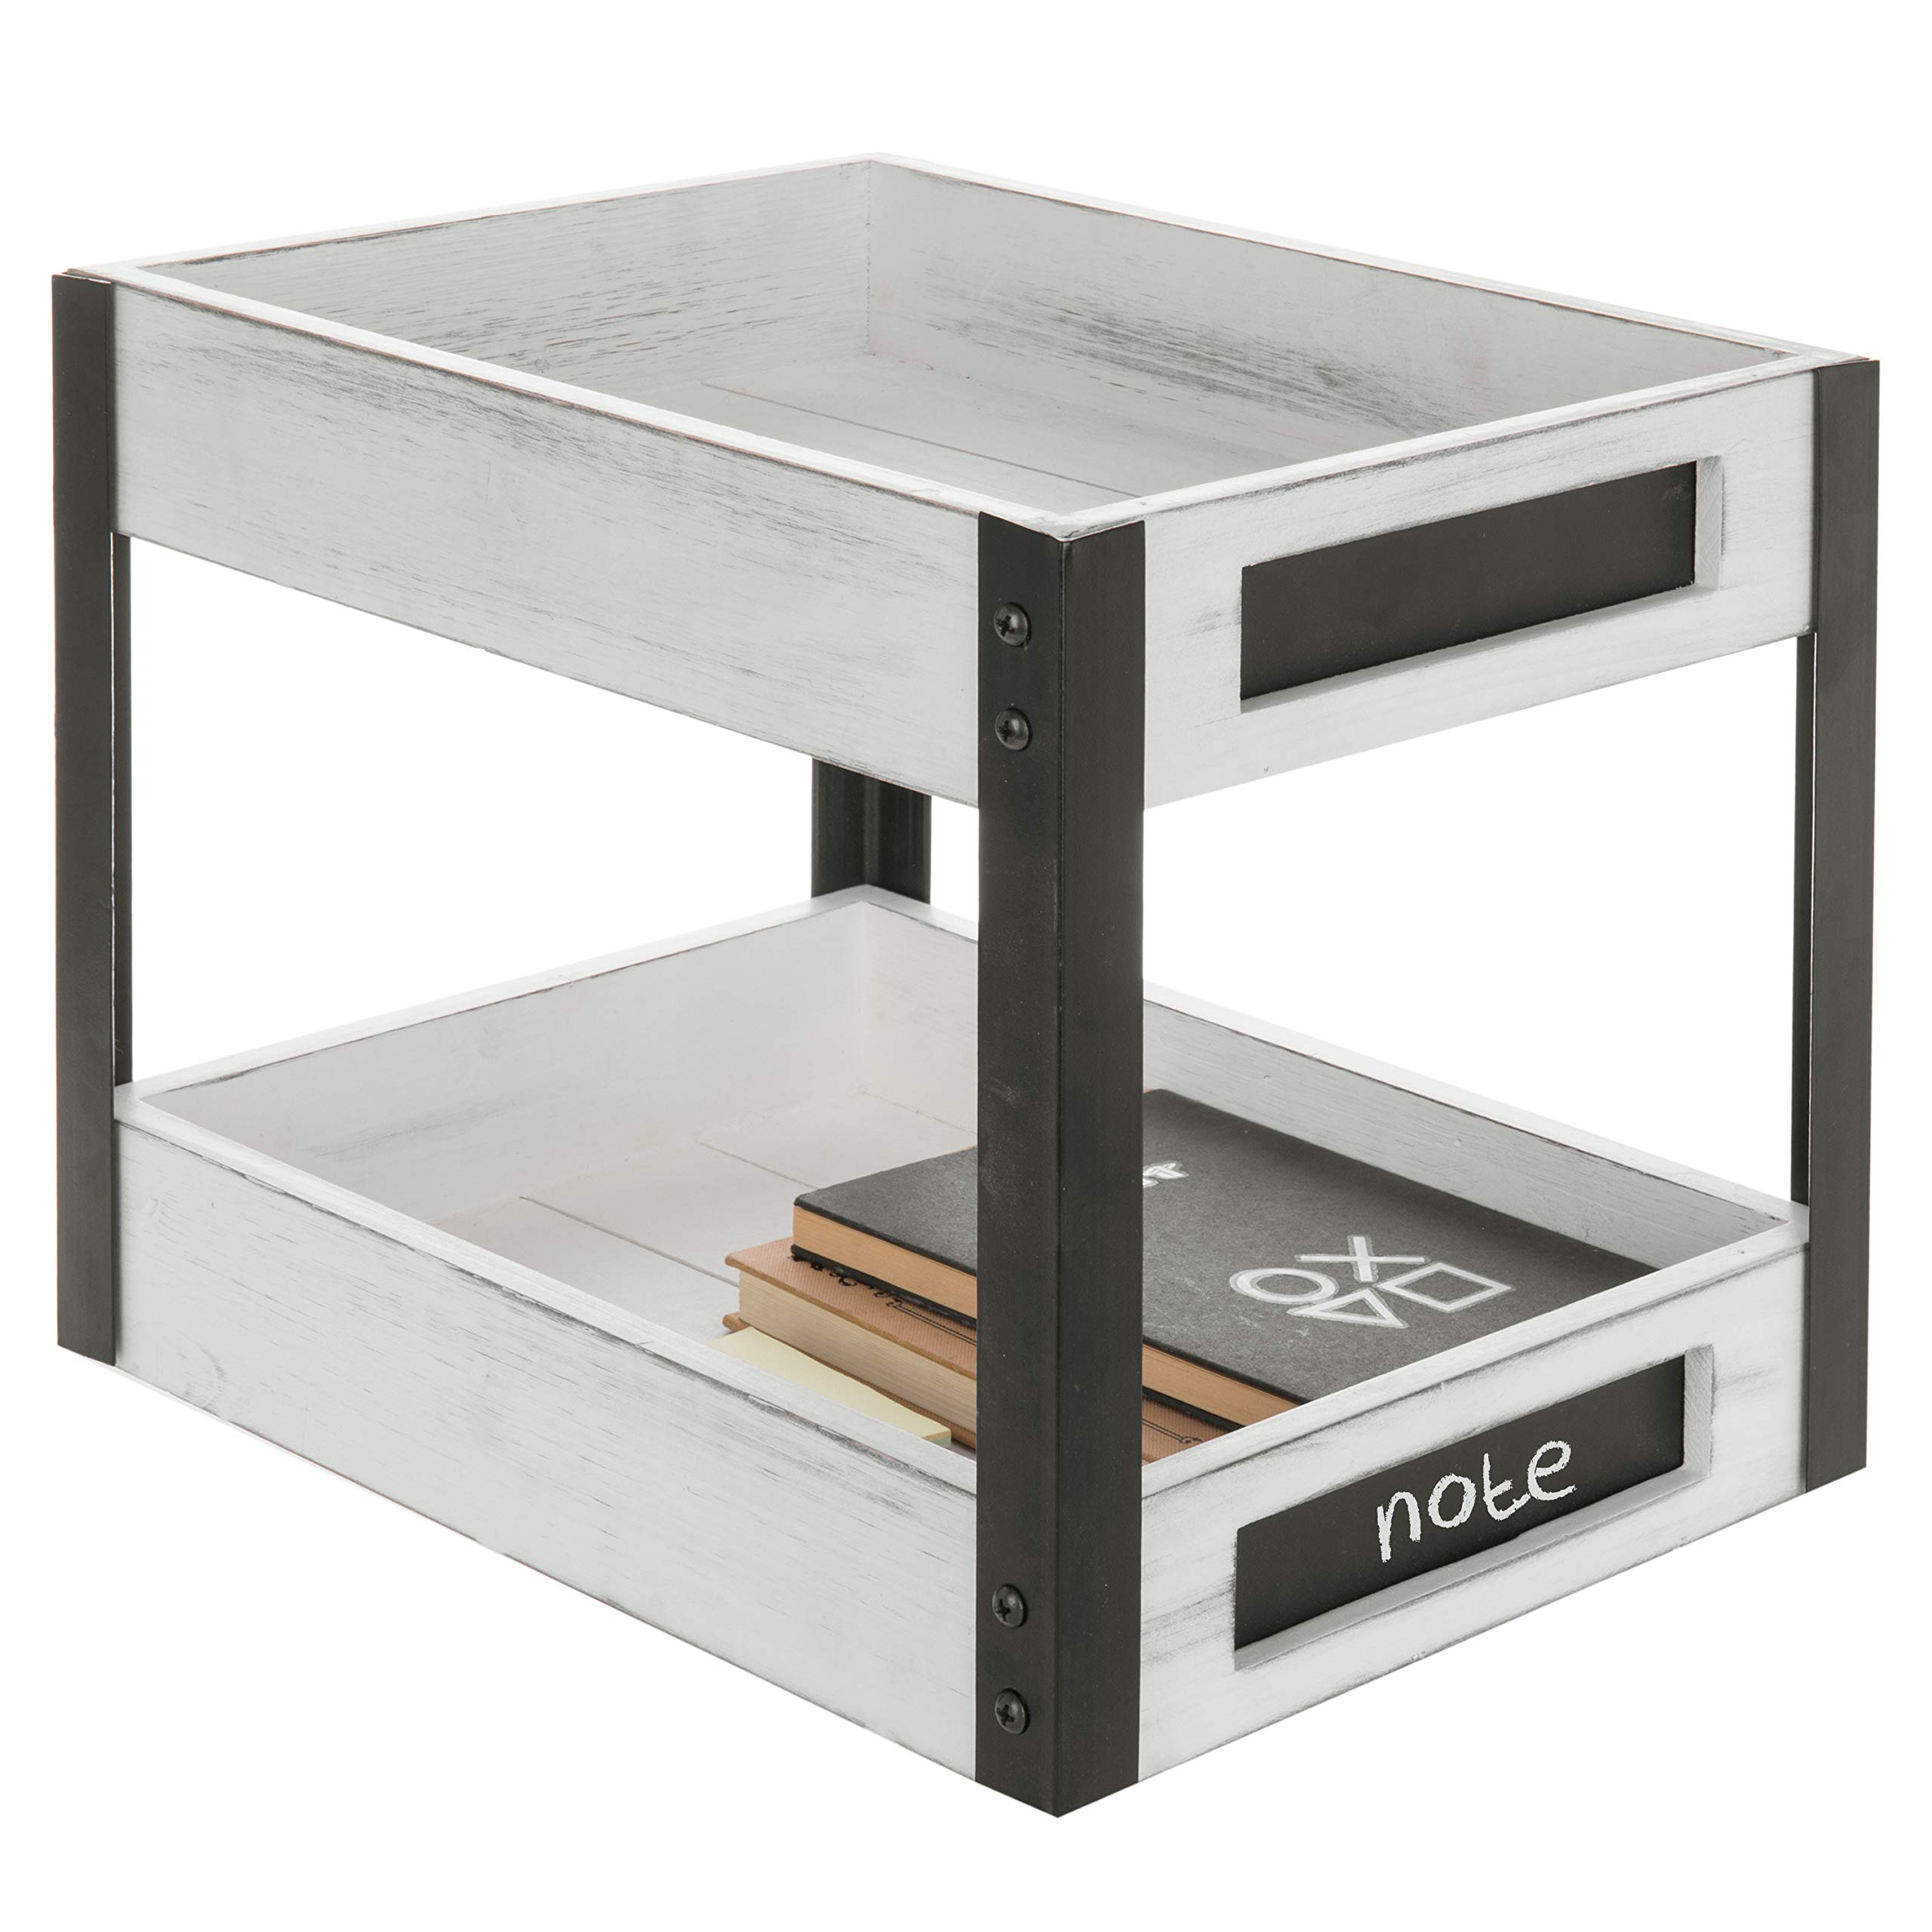 MyGift 2-Tier Vintage White Wooden Document Tray Rack with Chalkboard Labels by MyGift